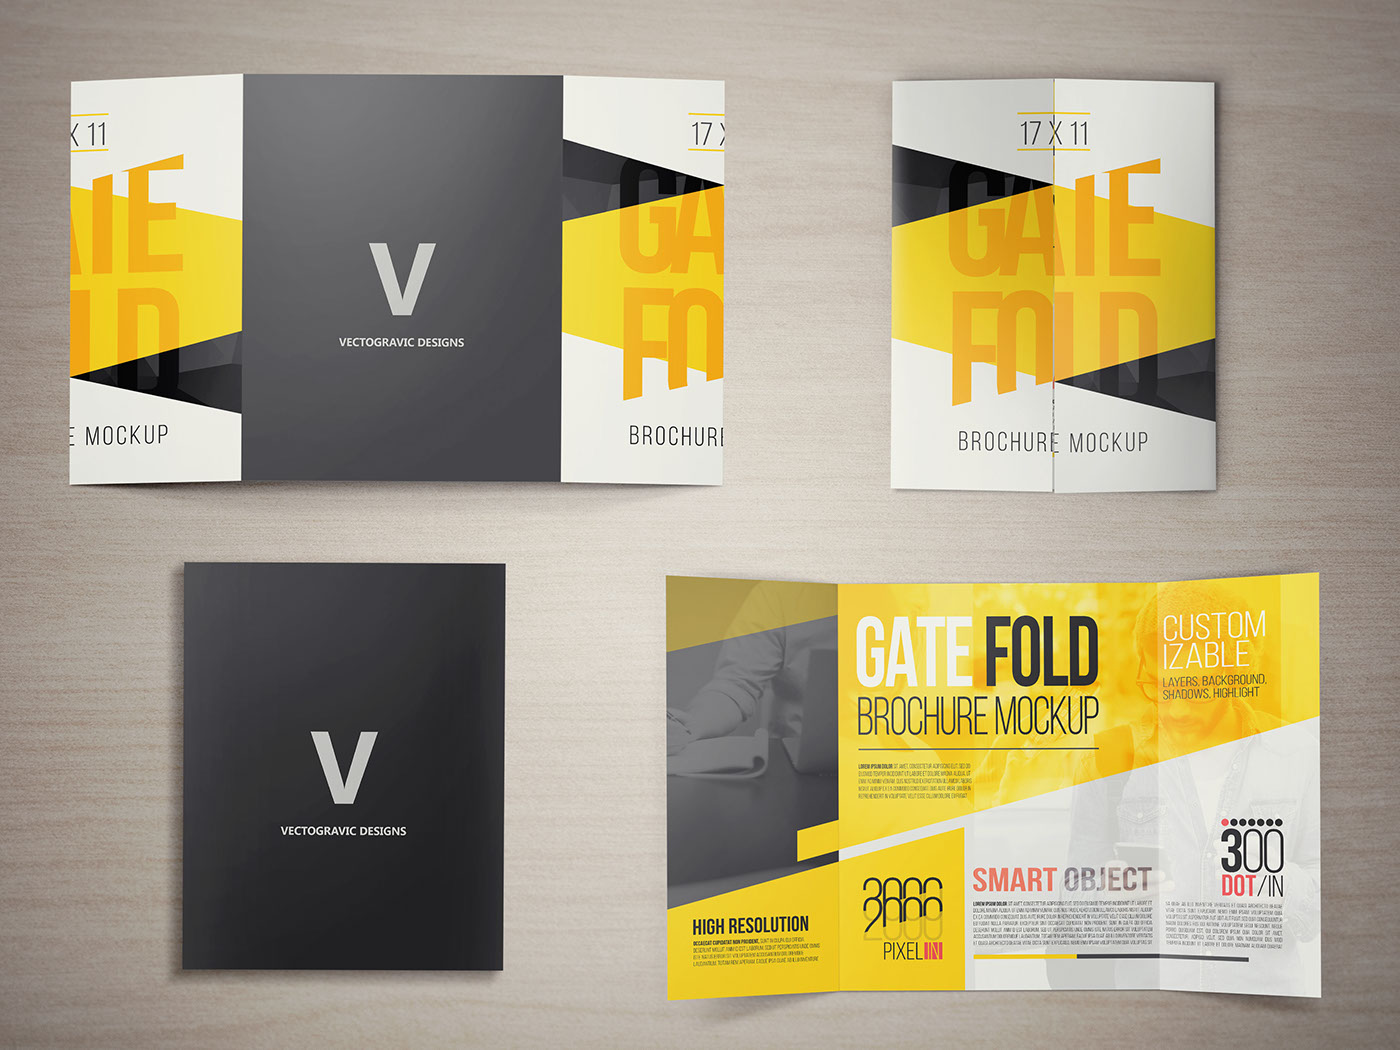 Five PSD Files Of 17×11 Gate Fold Brochure Mockup, Editable And Easy To  Customize, Organized Layers, High Resolution. Nice Look